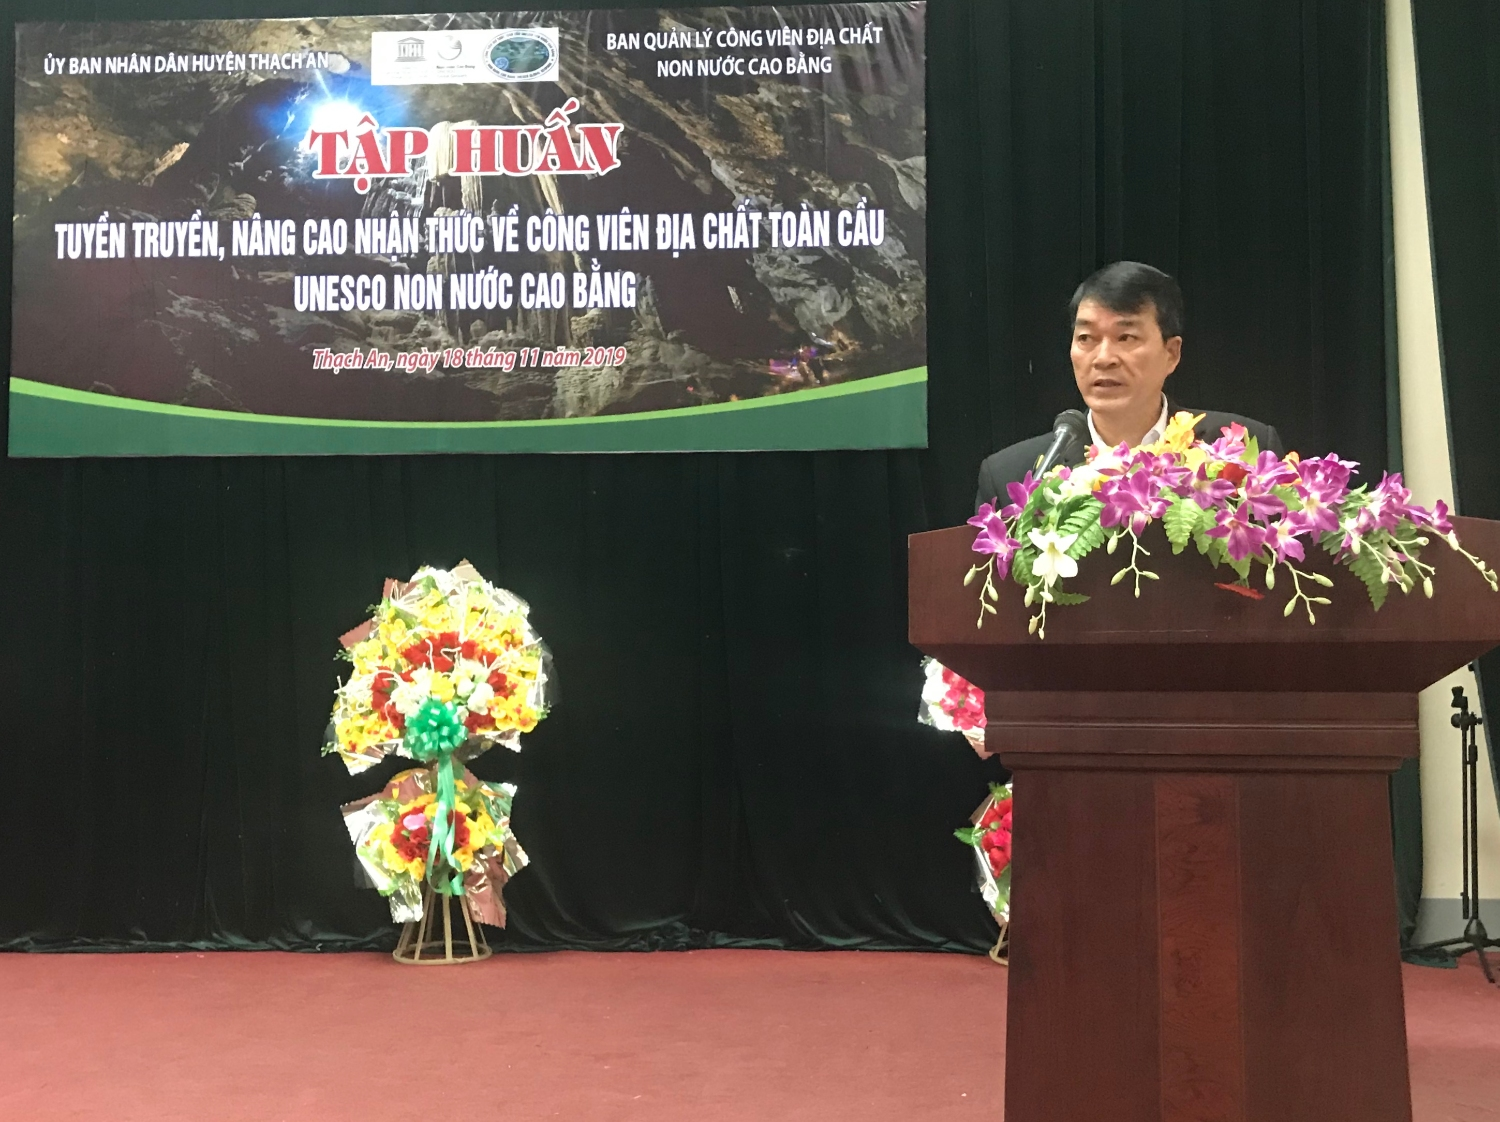 Mr. Ngo The Manh, Vice Chairman of Thạch An People's committee delivered an opening remarks.